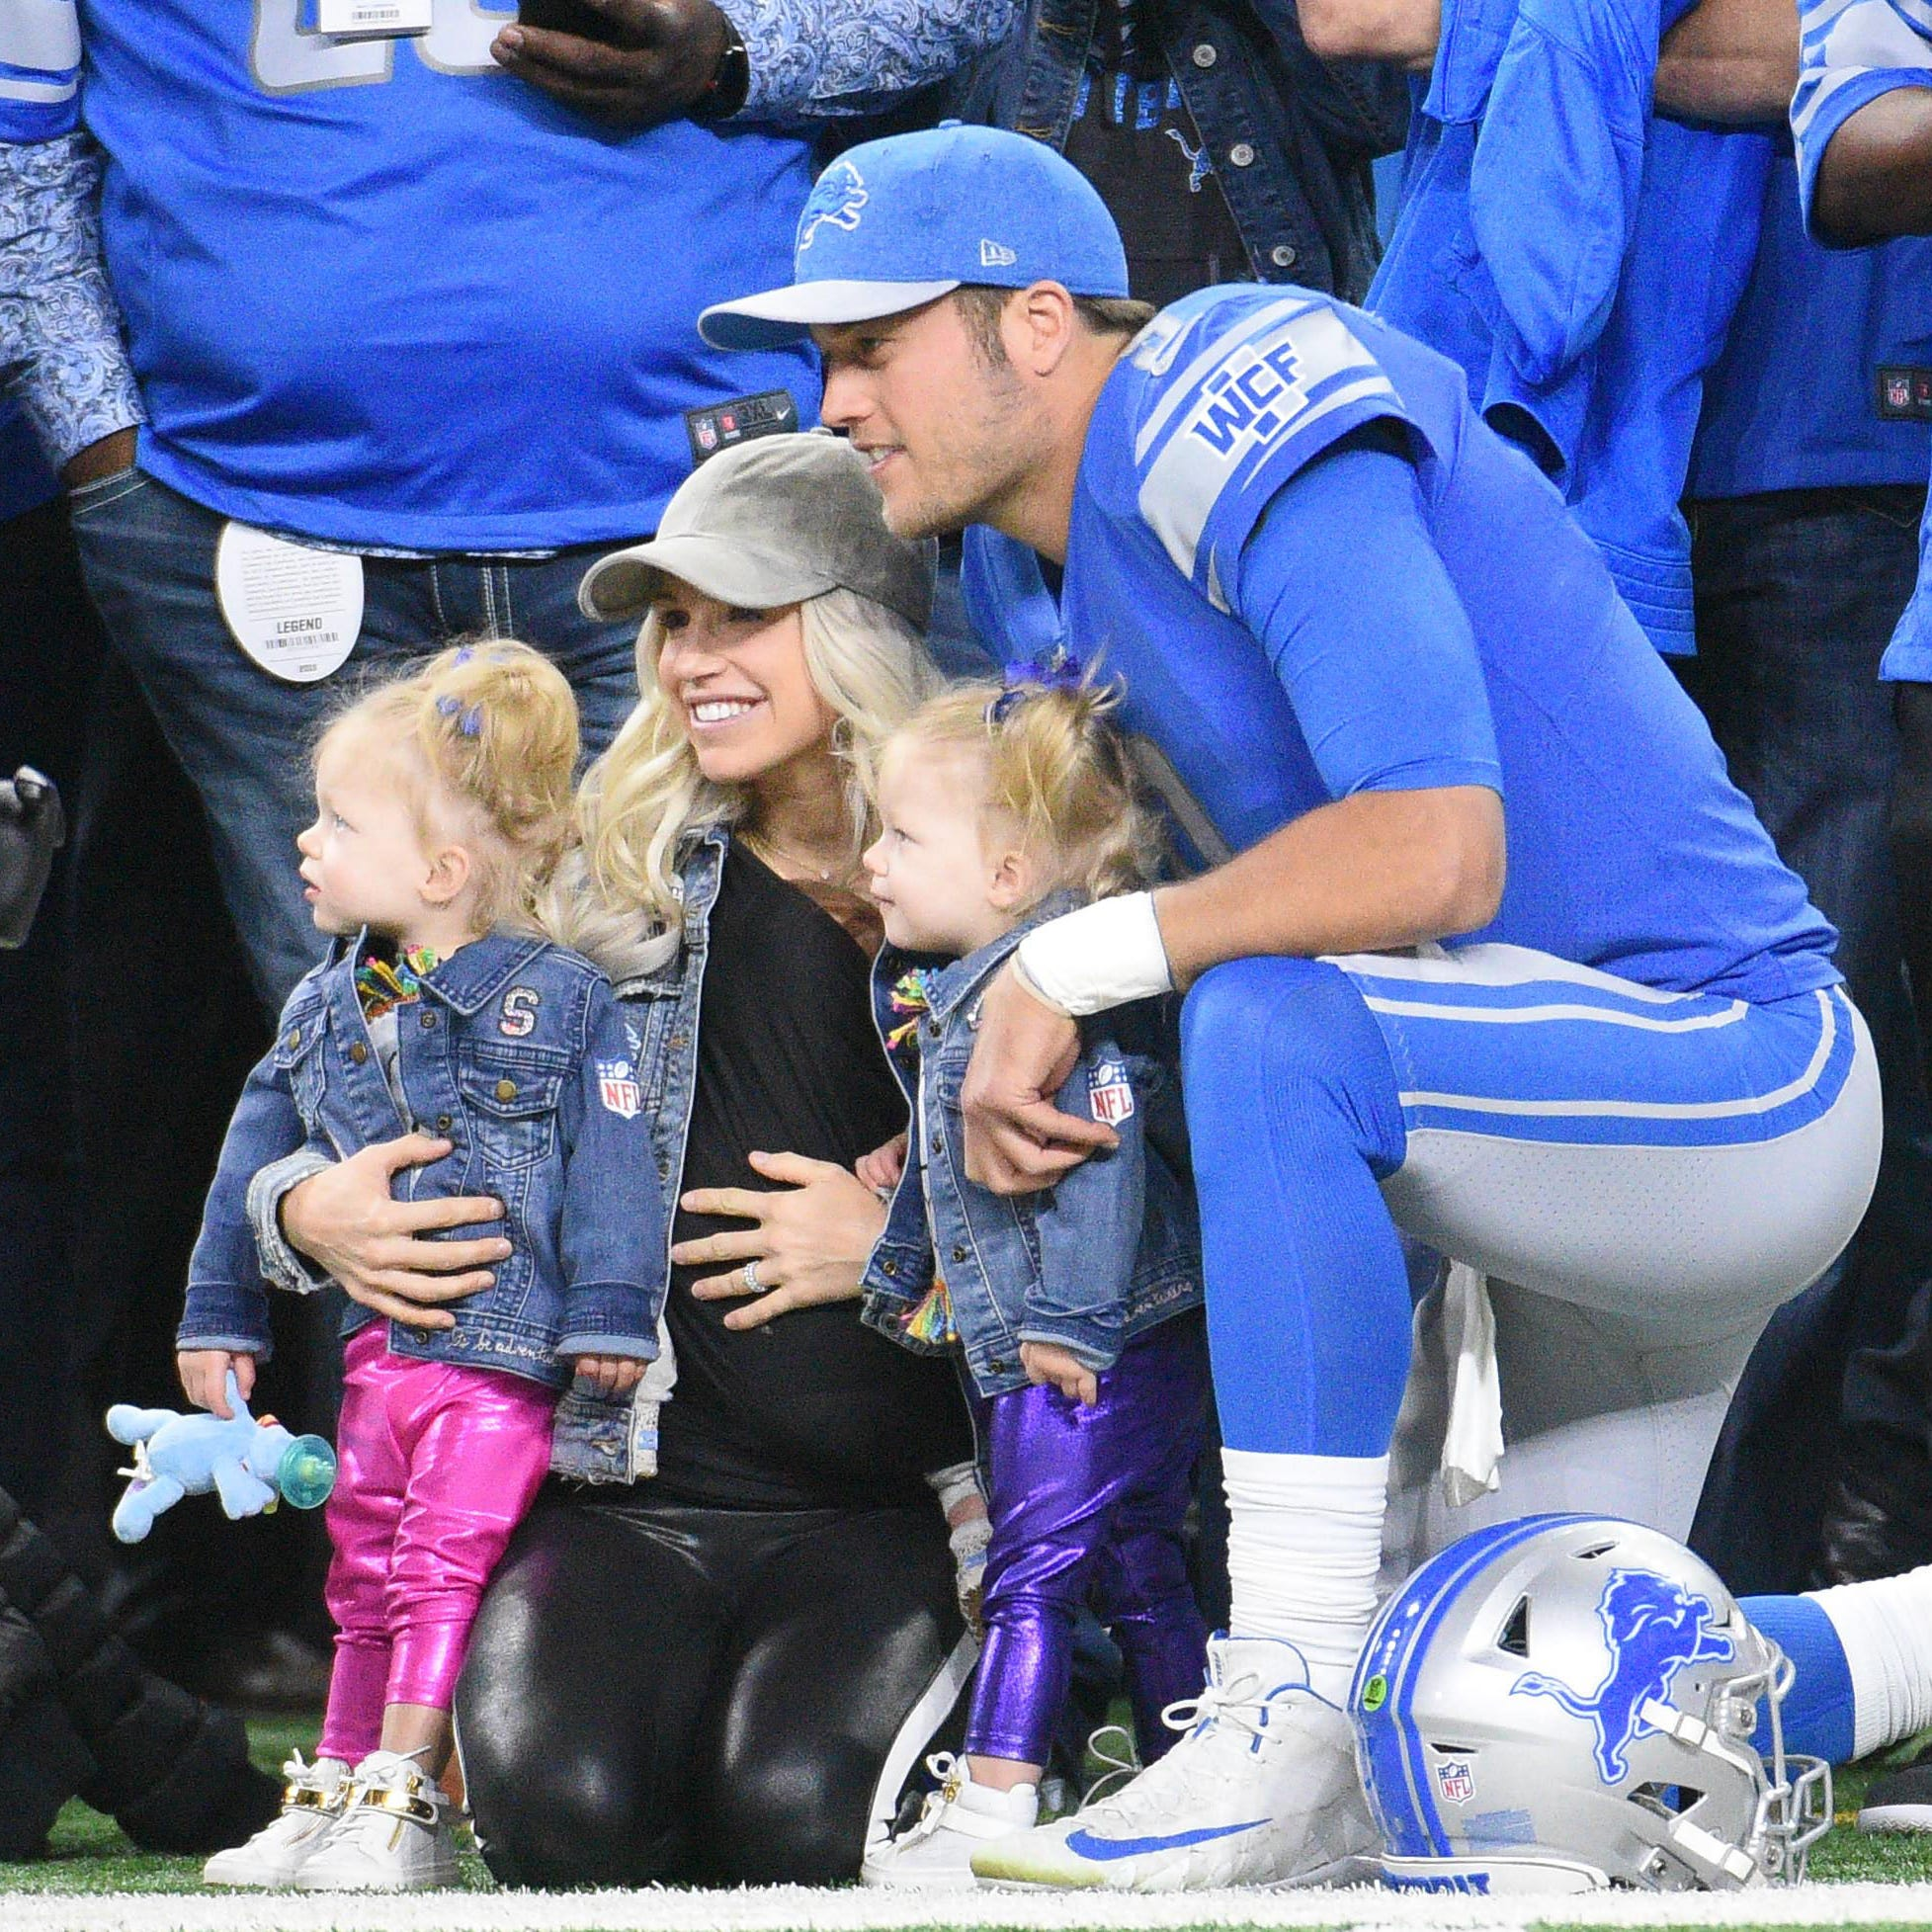 Kelly Stafford has a brain tumor called an acoustic neuroma. Here's what that means